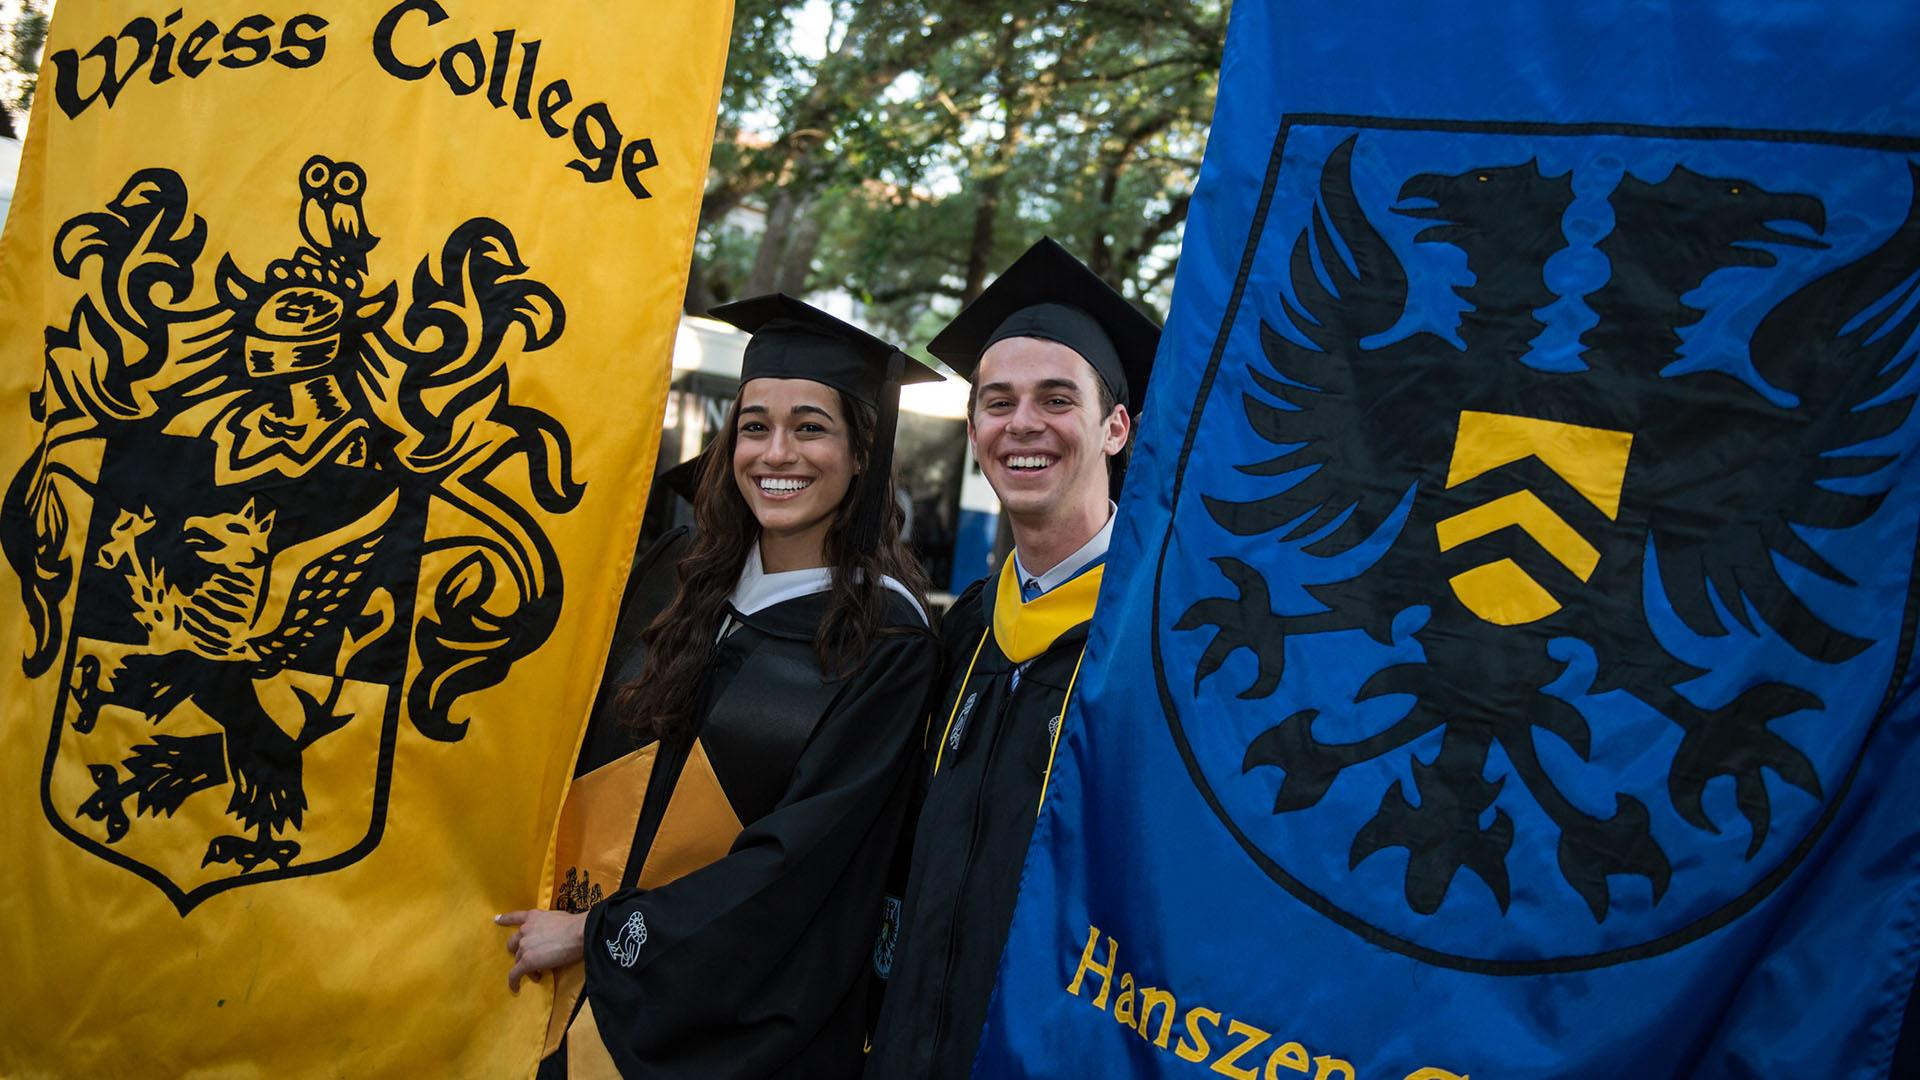 Students with college banners